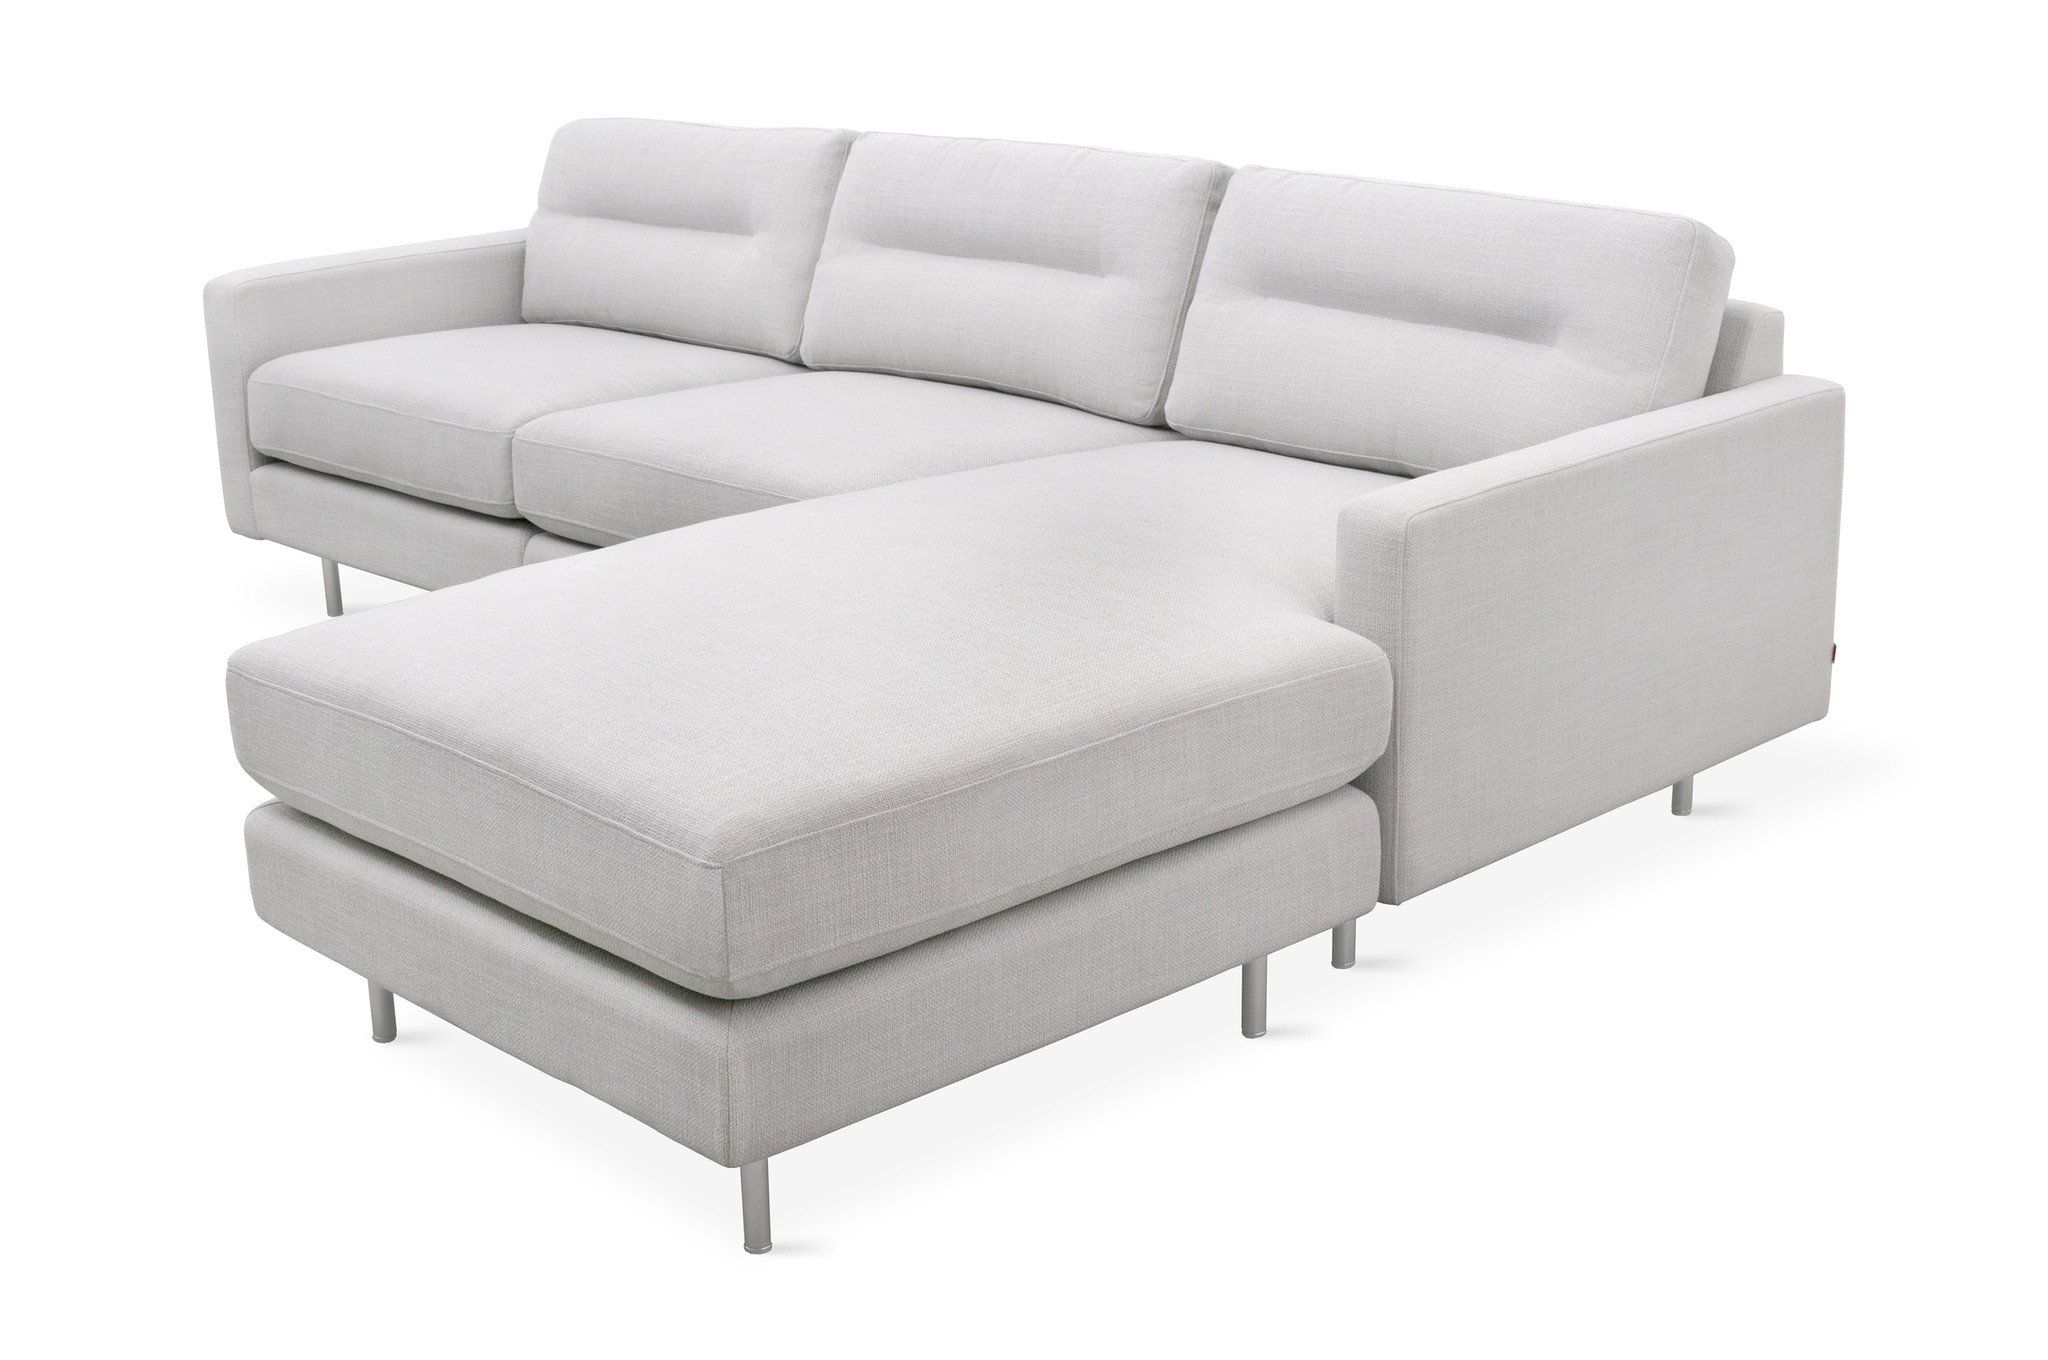 Astonishing Logan Bi Sectional Sofa In Assorted Colors Design By Gus Gmtry Best Dining Table And Chair Ideas Images Gmtryco